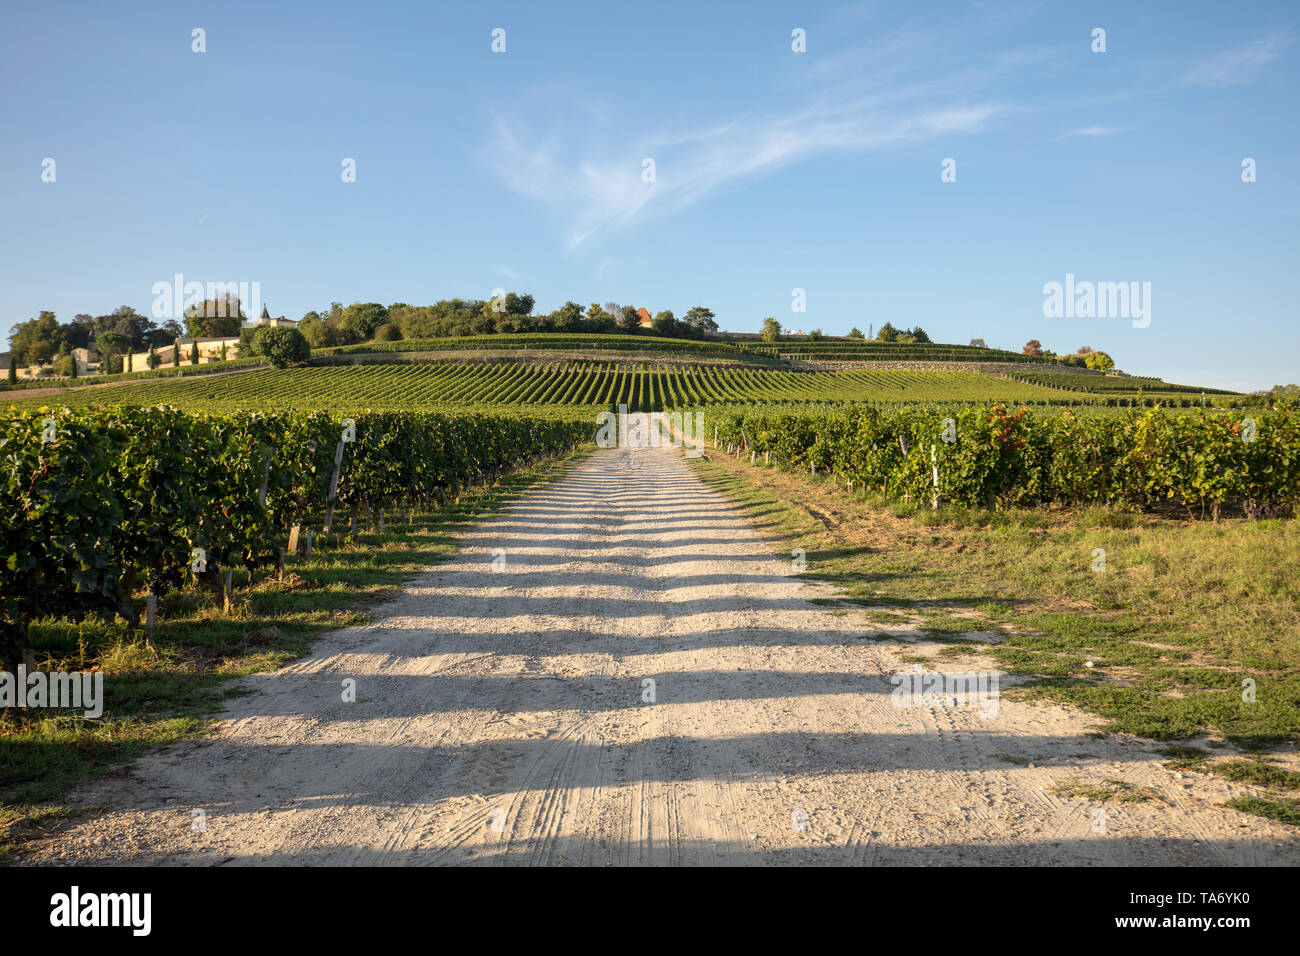 Ripe red Merlot grapes on rows of vines in a vienyard before the wine harvest in Saint Emilion region. France - Stock Image